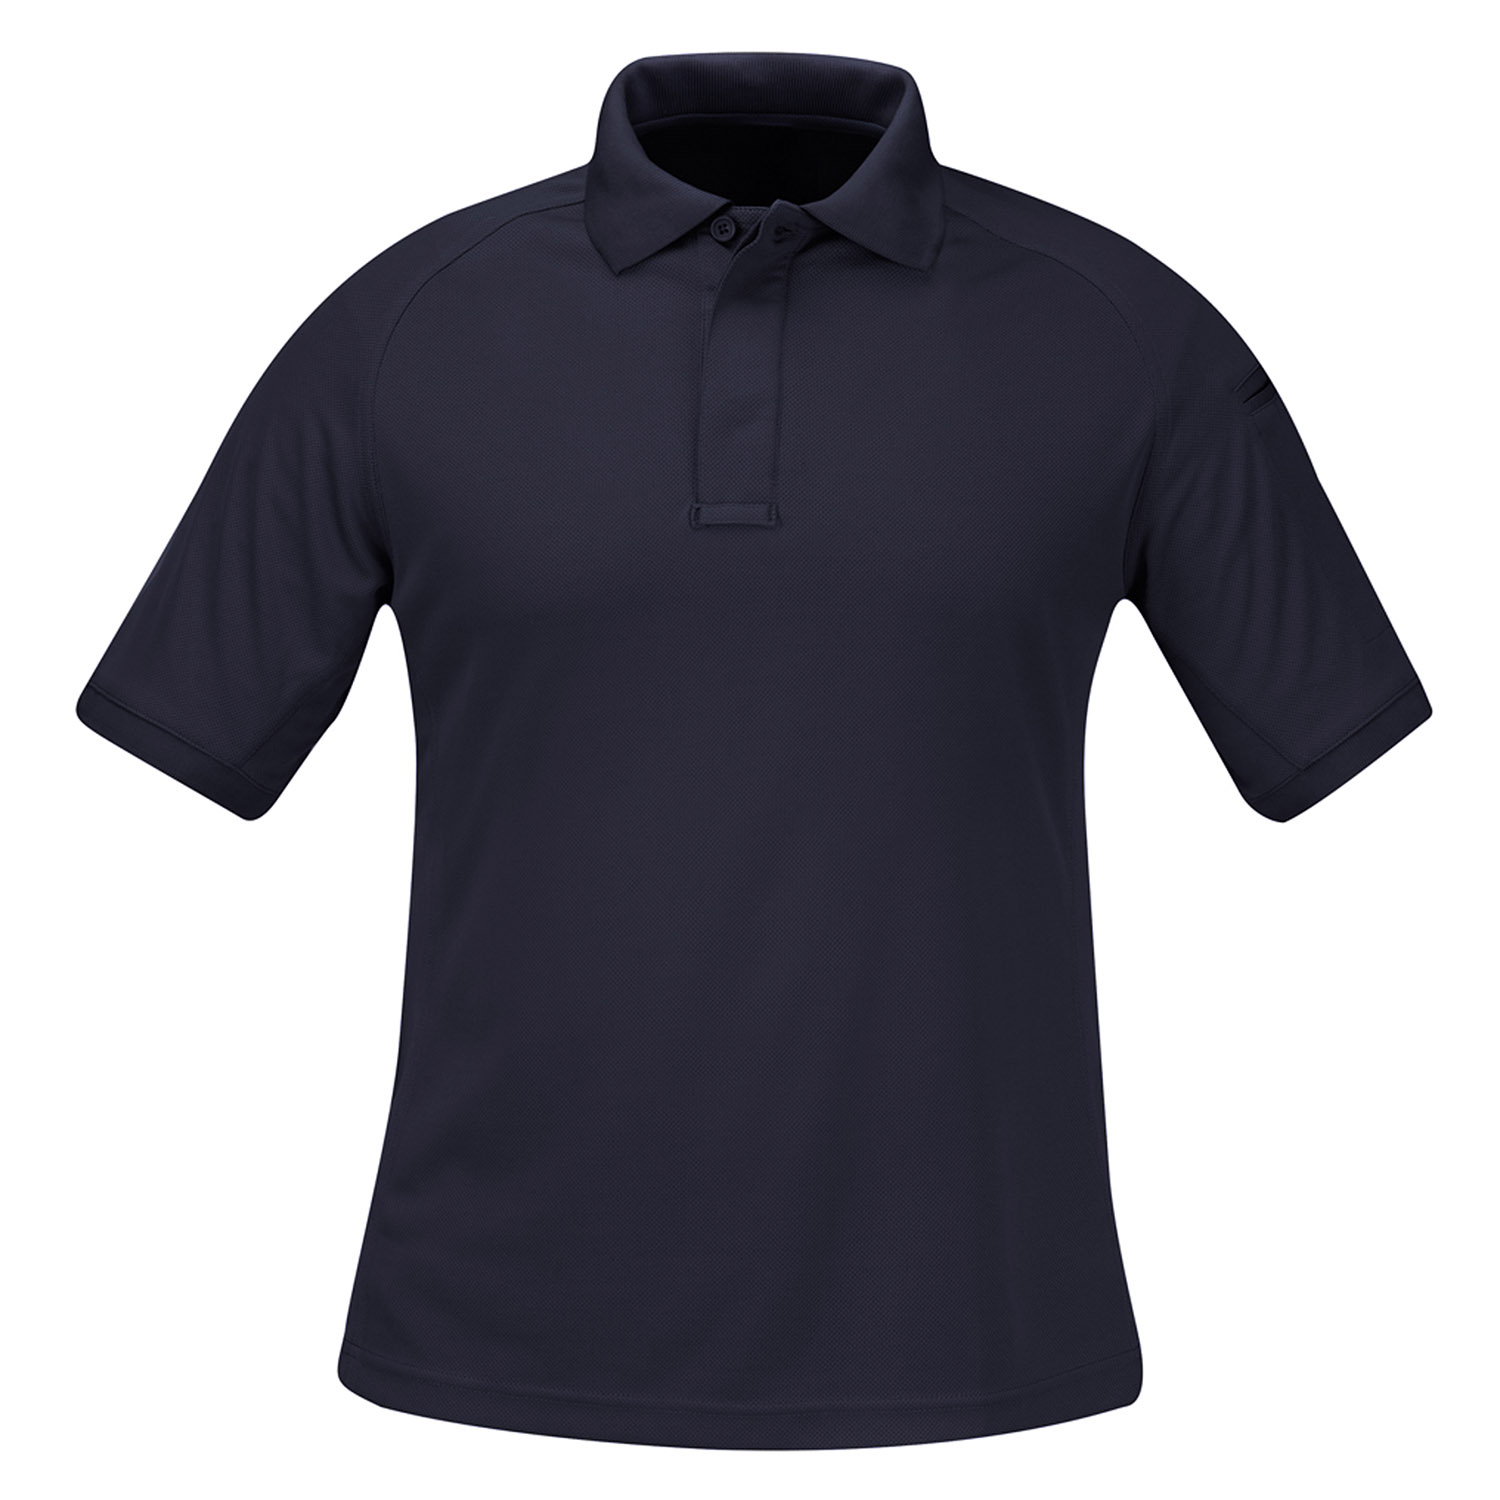 Propper Men's Snag Free Polo